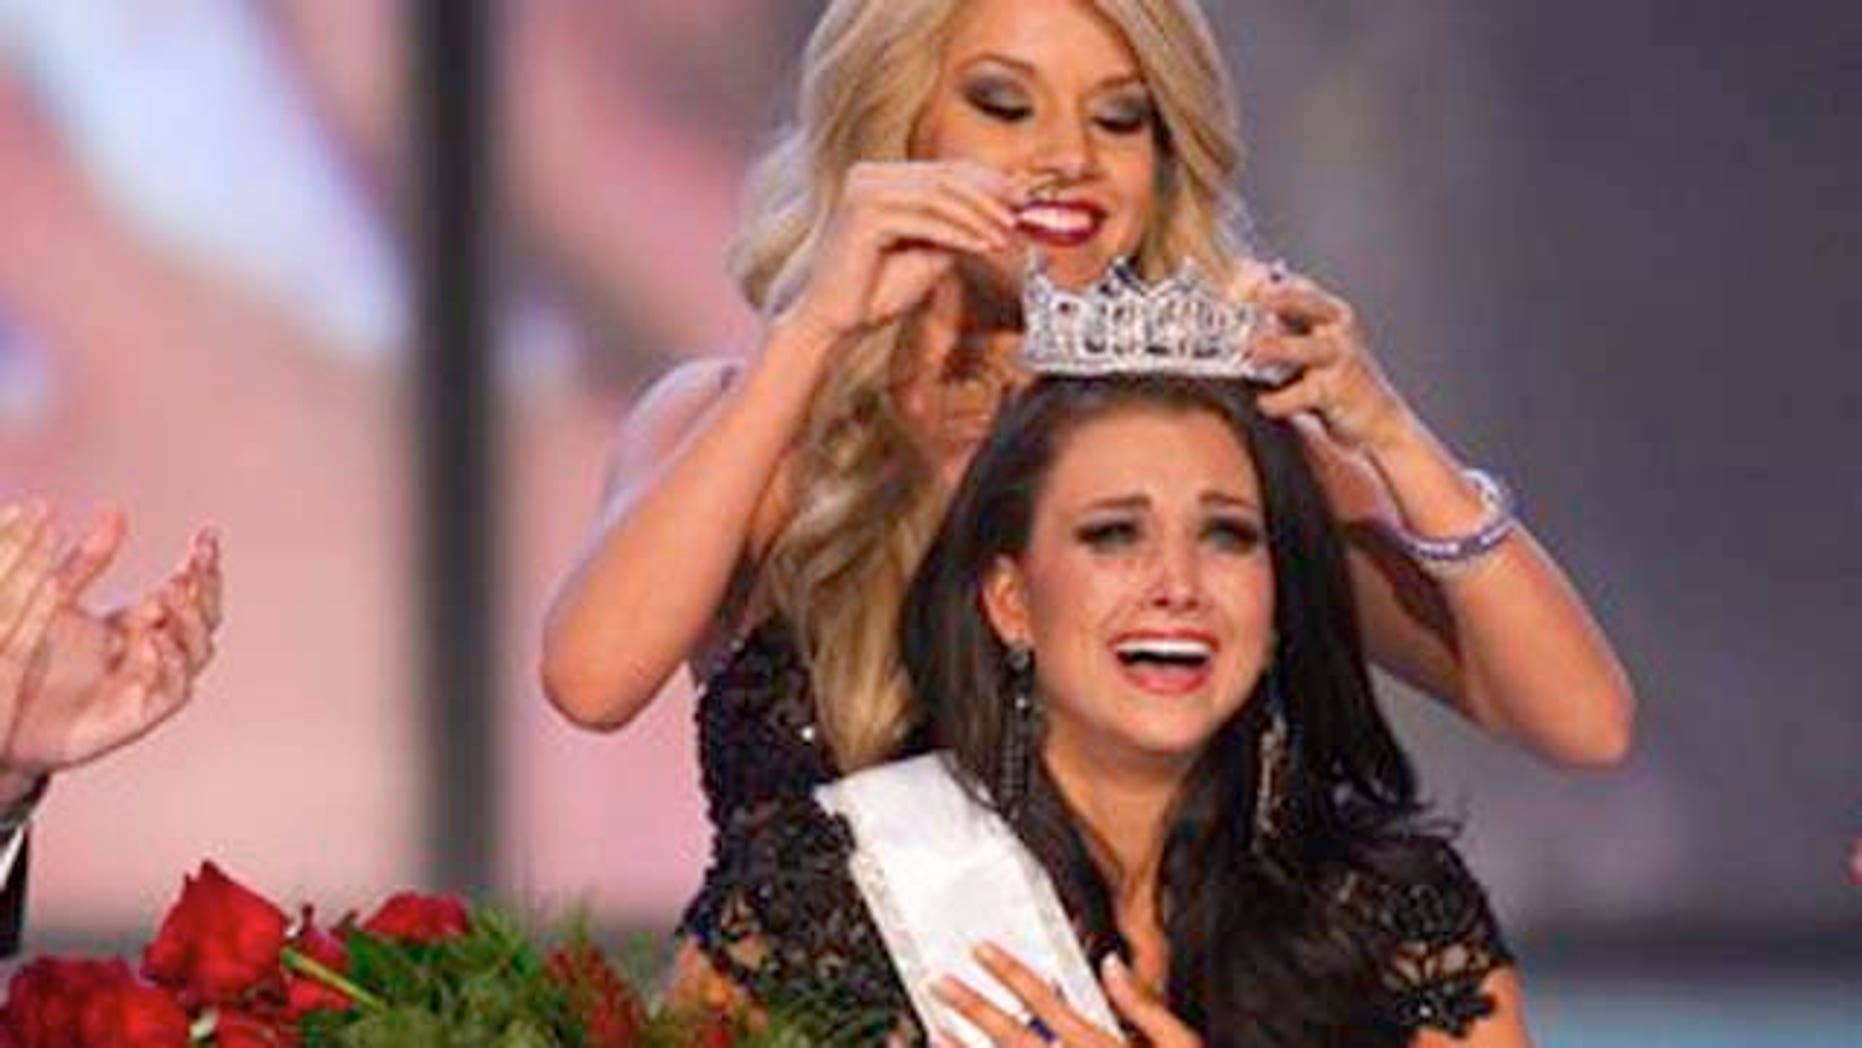 January 14, 2012: Miss Wisconsin Laura Kaeppeler reacts after being crowned Miss America.